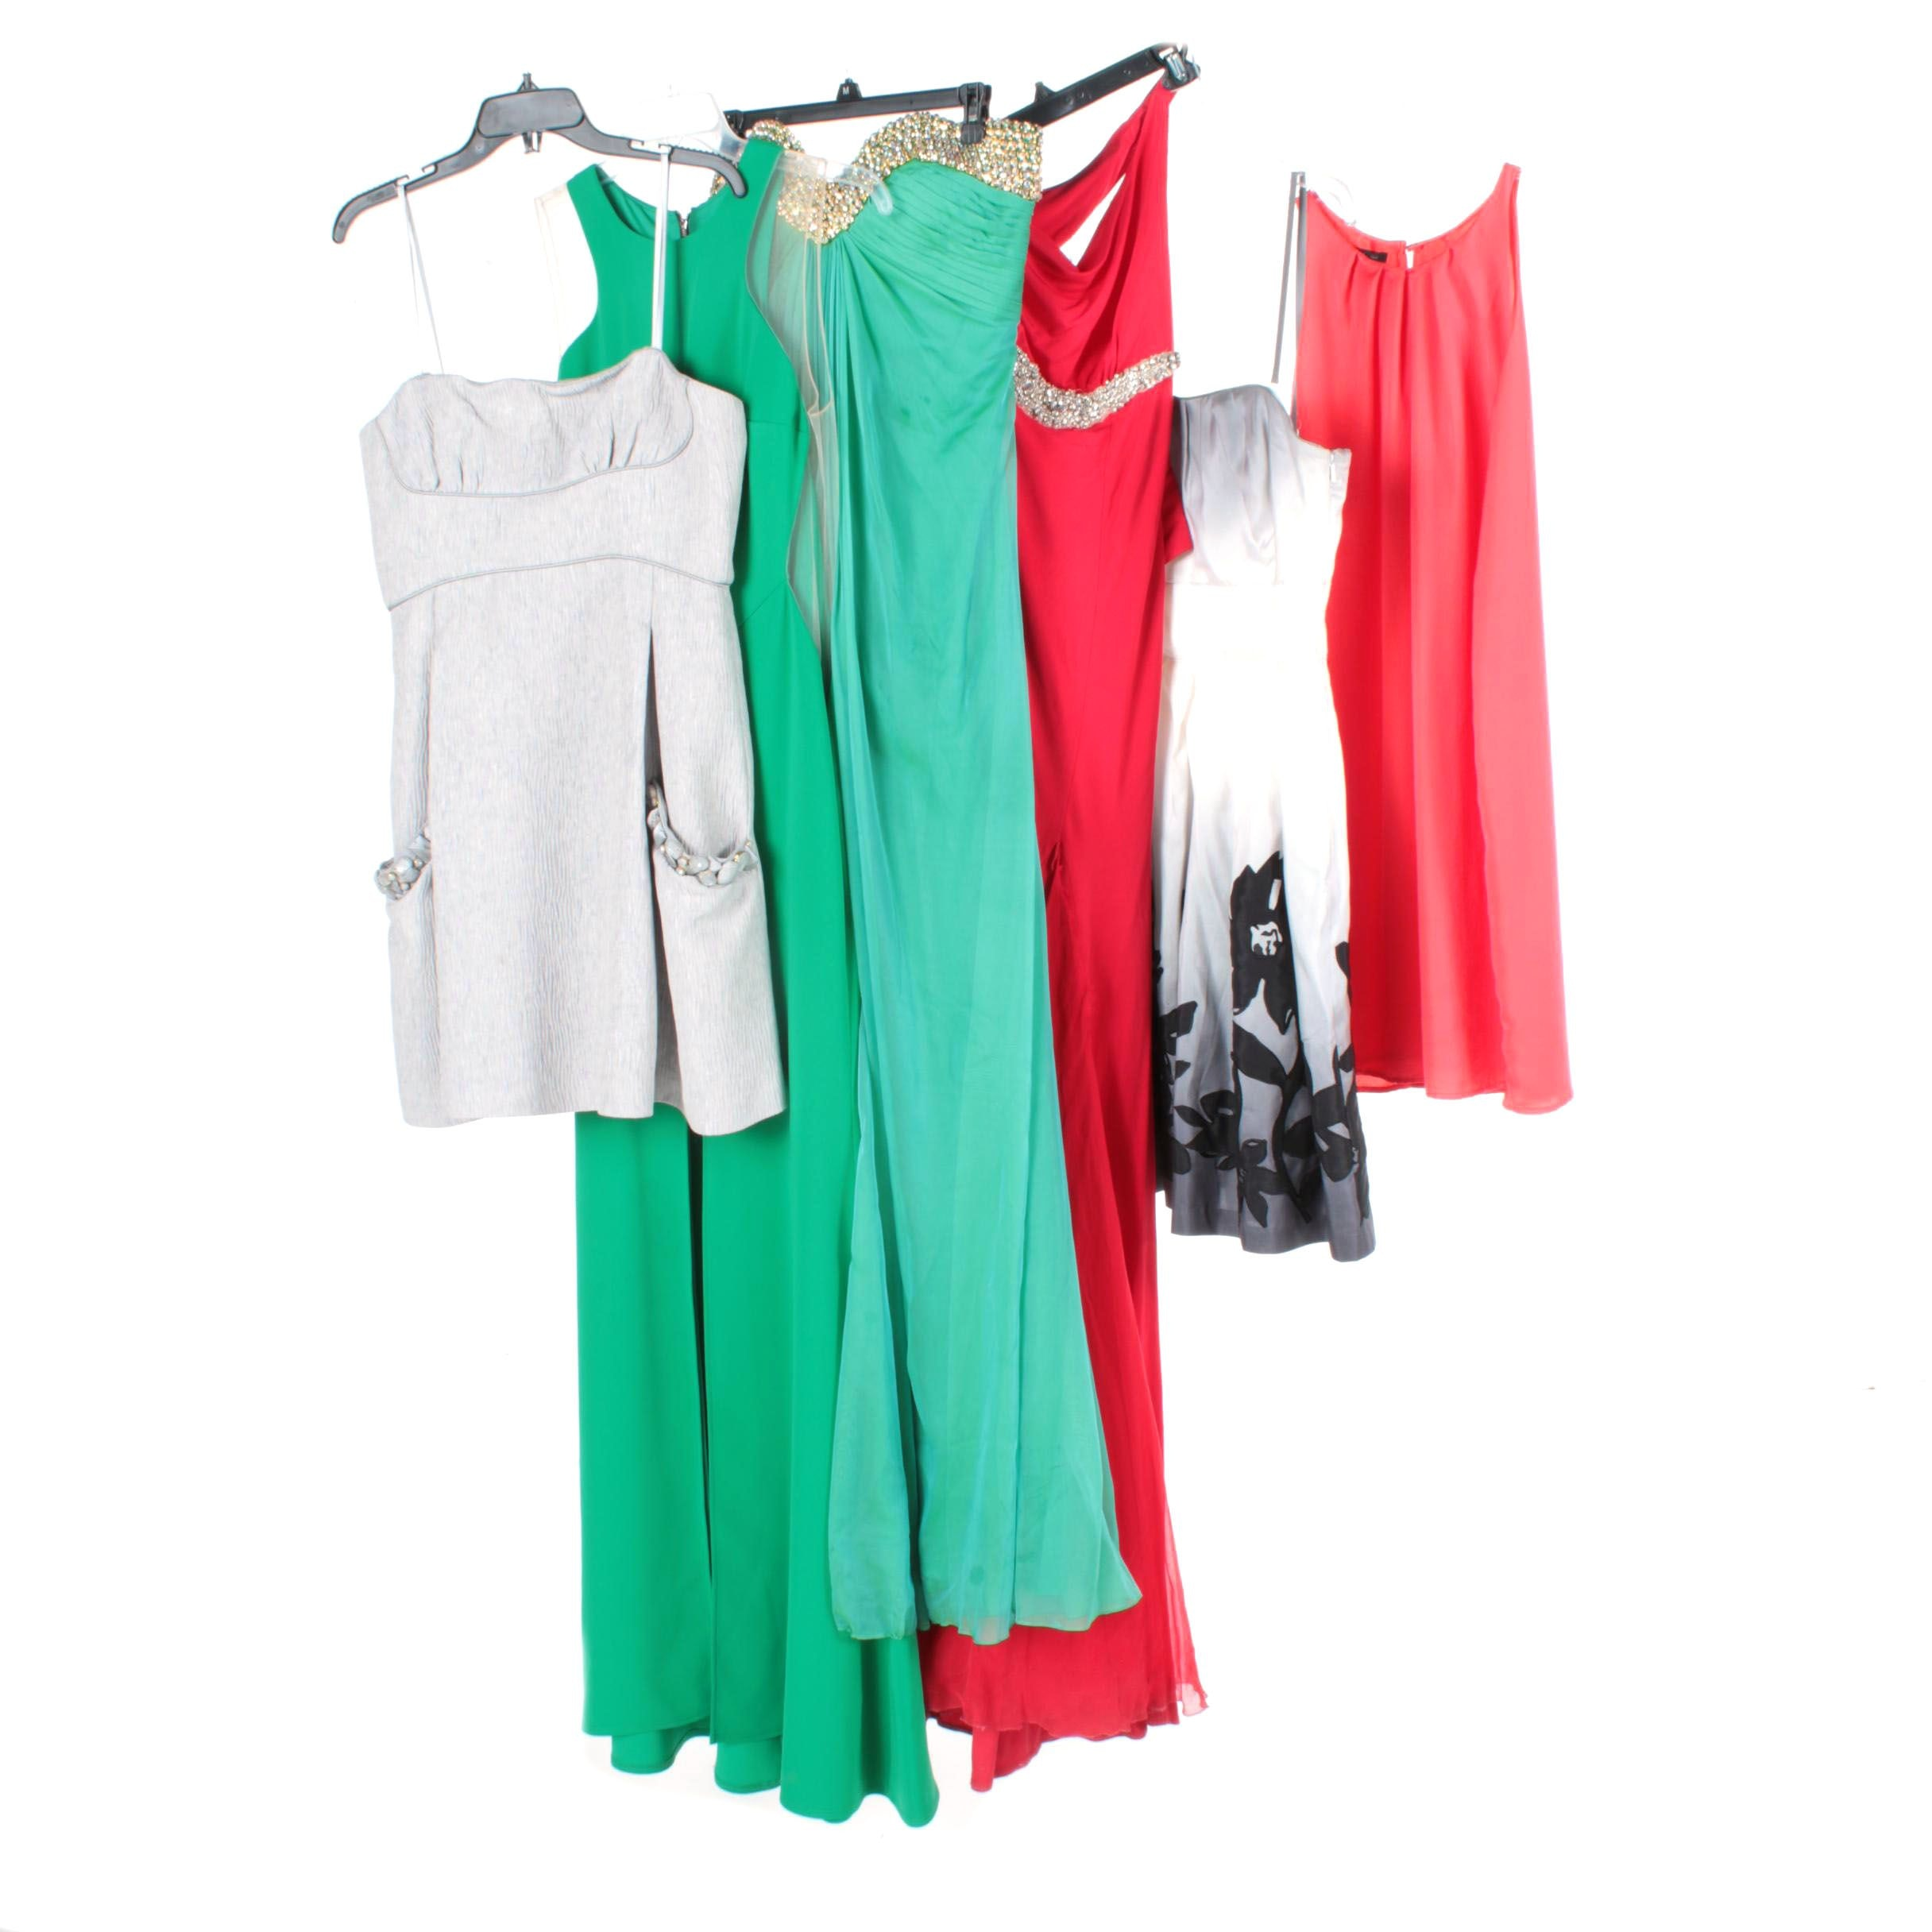 Group of Women's Dresses Including BCBG Max Azria